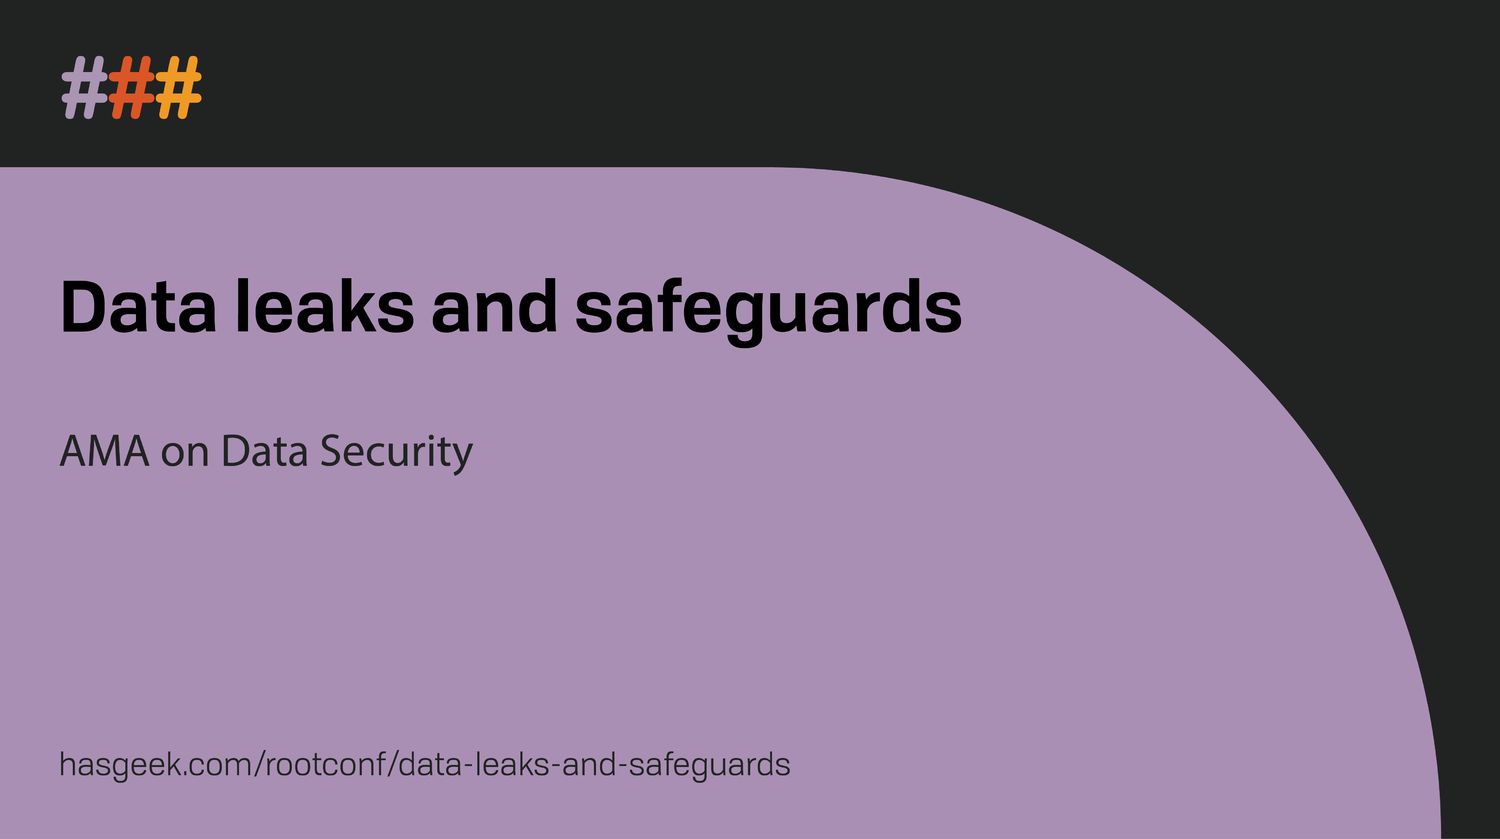 Data leaks and safeguards